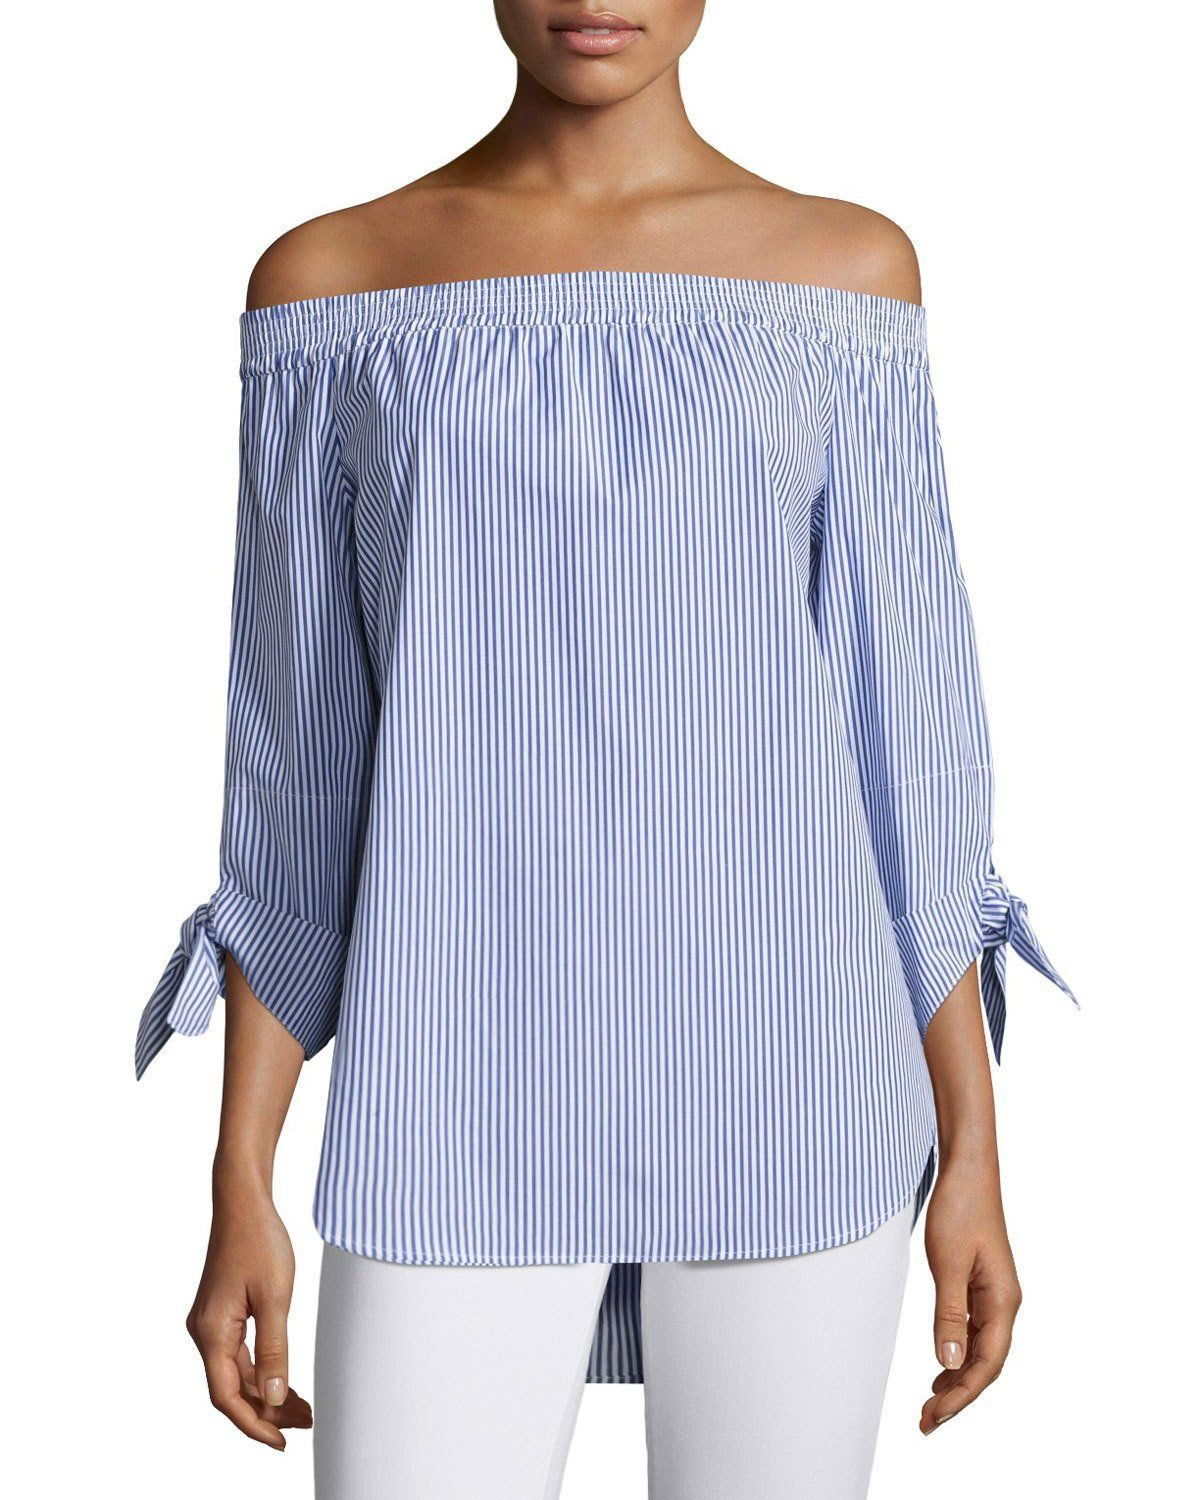 ae51c688b9d2bb Finley Jill Madison Striped Off-the-Shoulder Tie-Sleeve Blouse | Neiman  Marcus